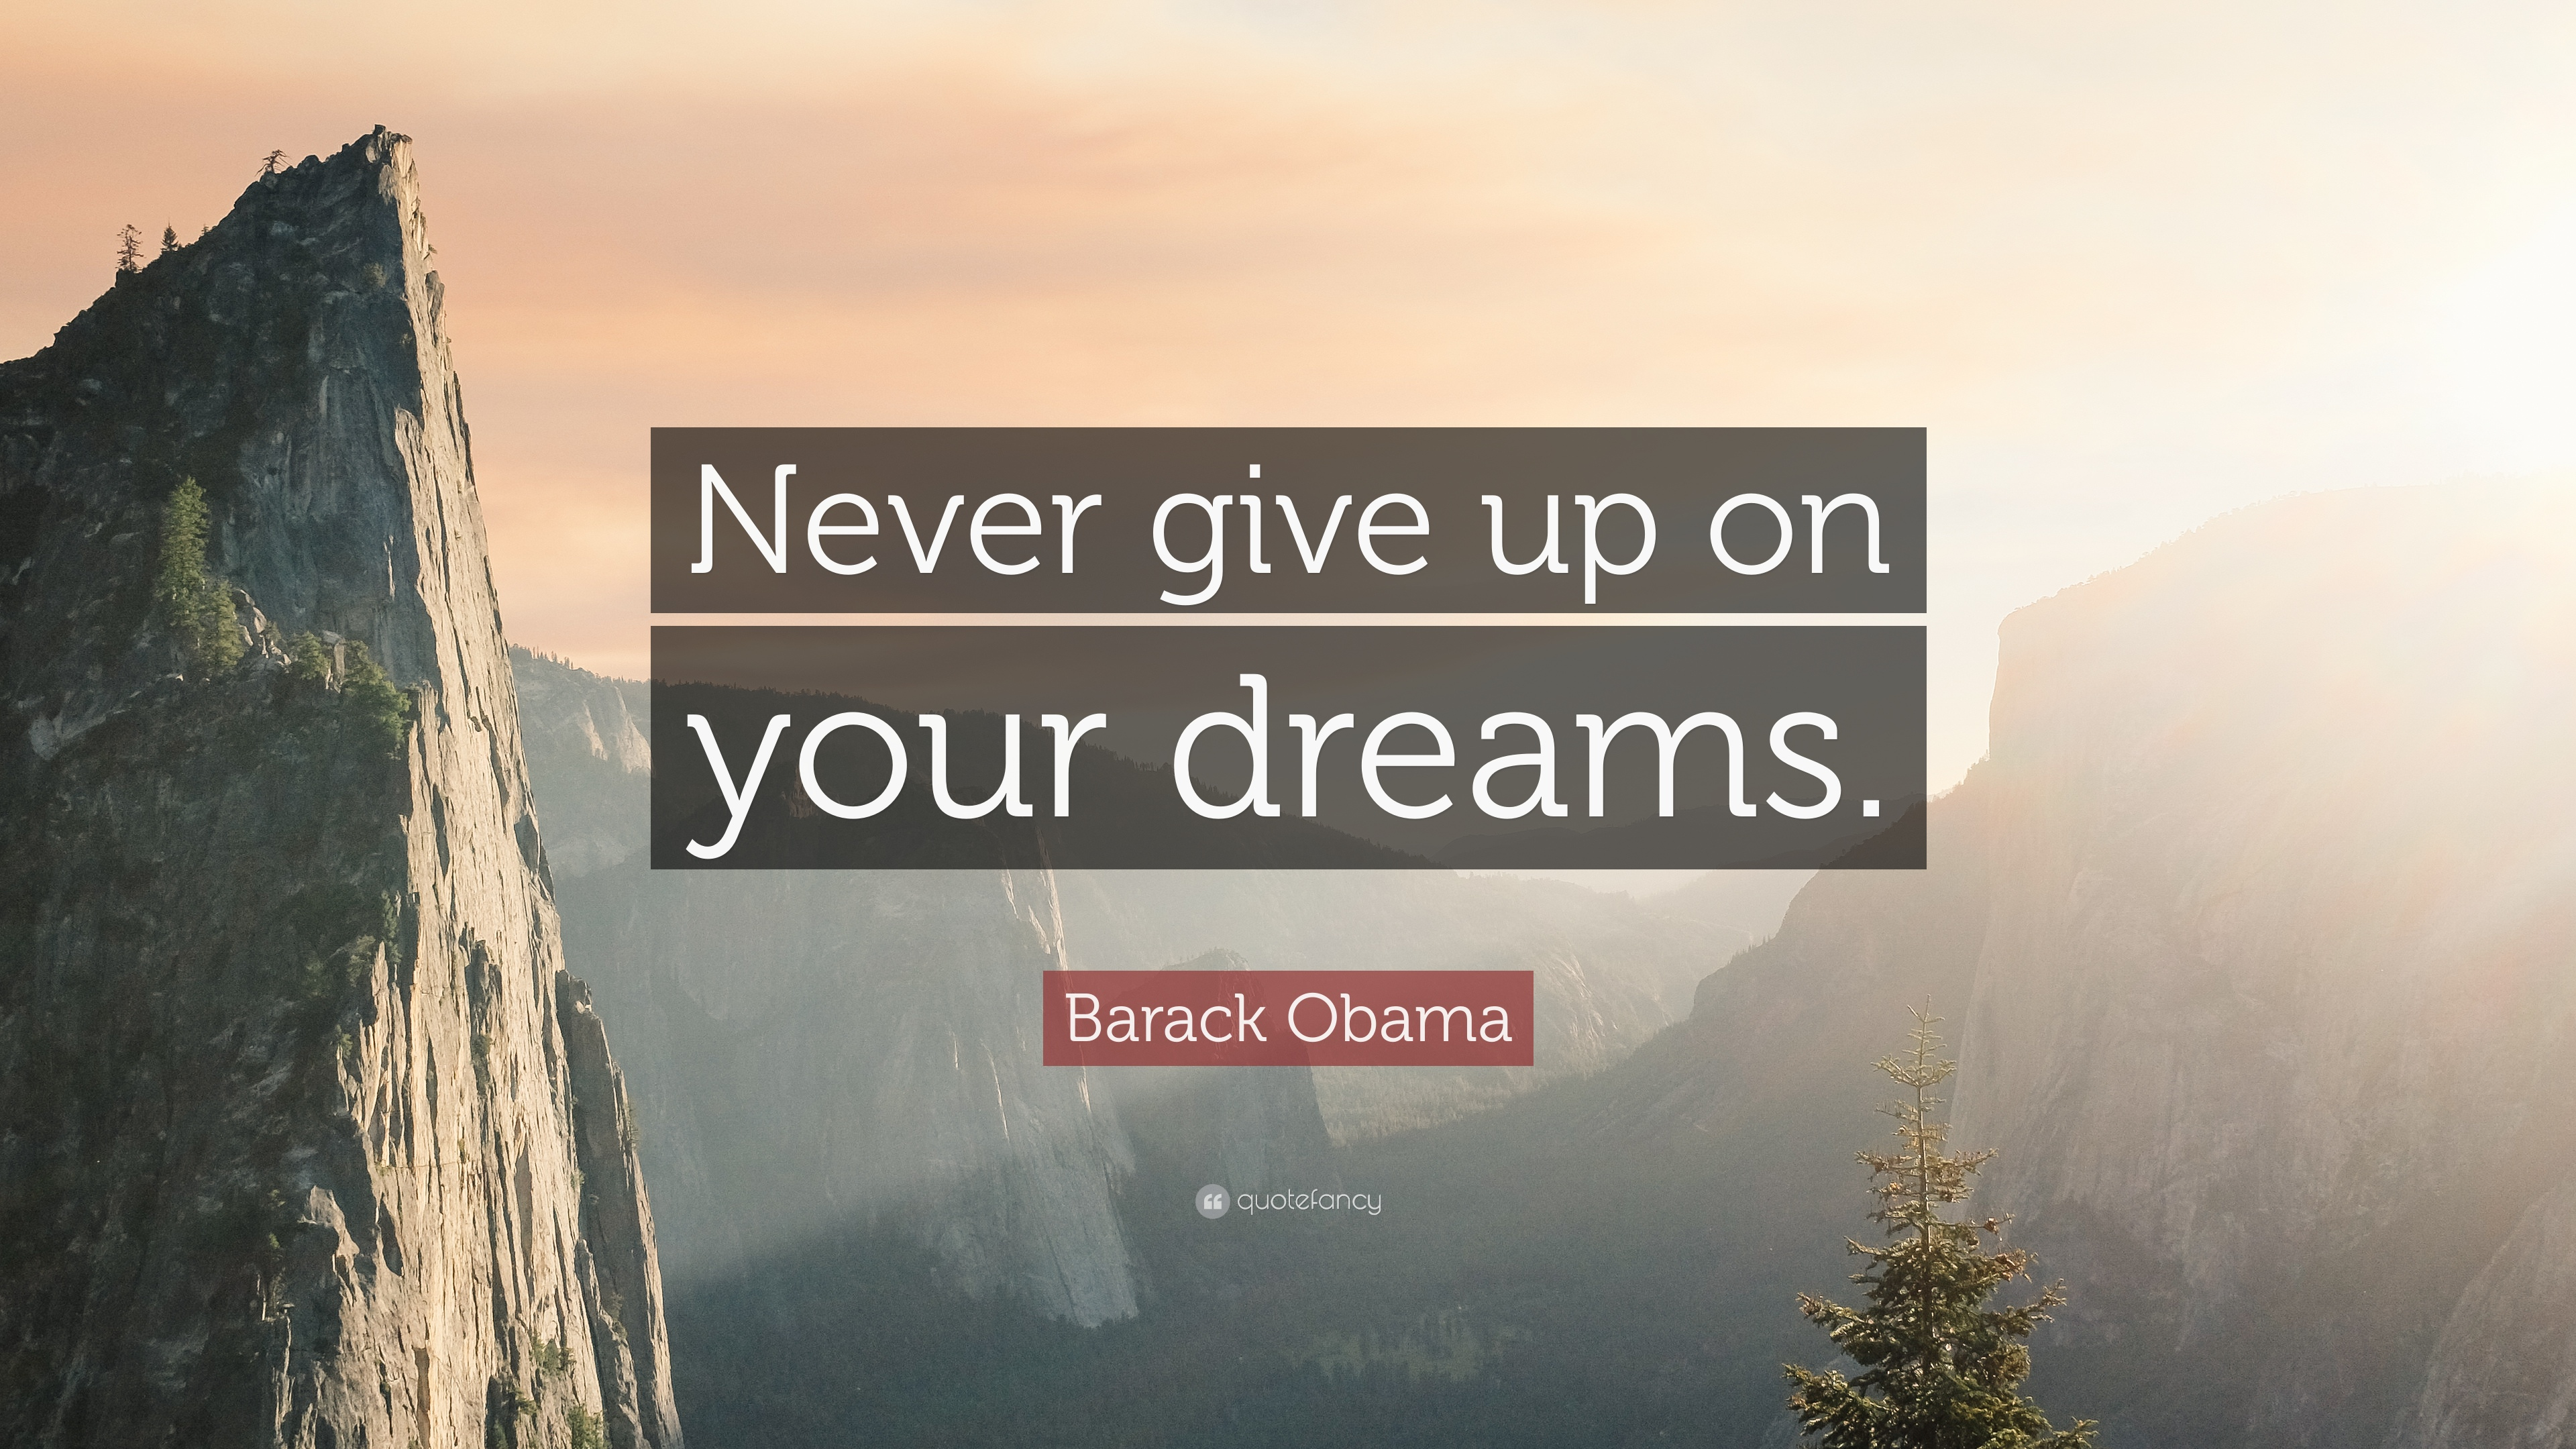 never give up on your dreams And it's okay to change your mind about the things you never it's okay to give up on a dream when you it's okay to give up on your dreams.